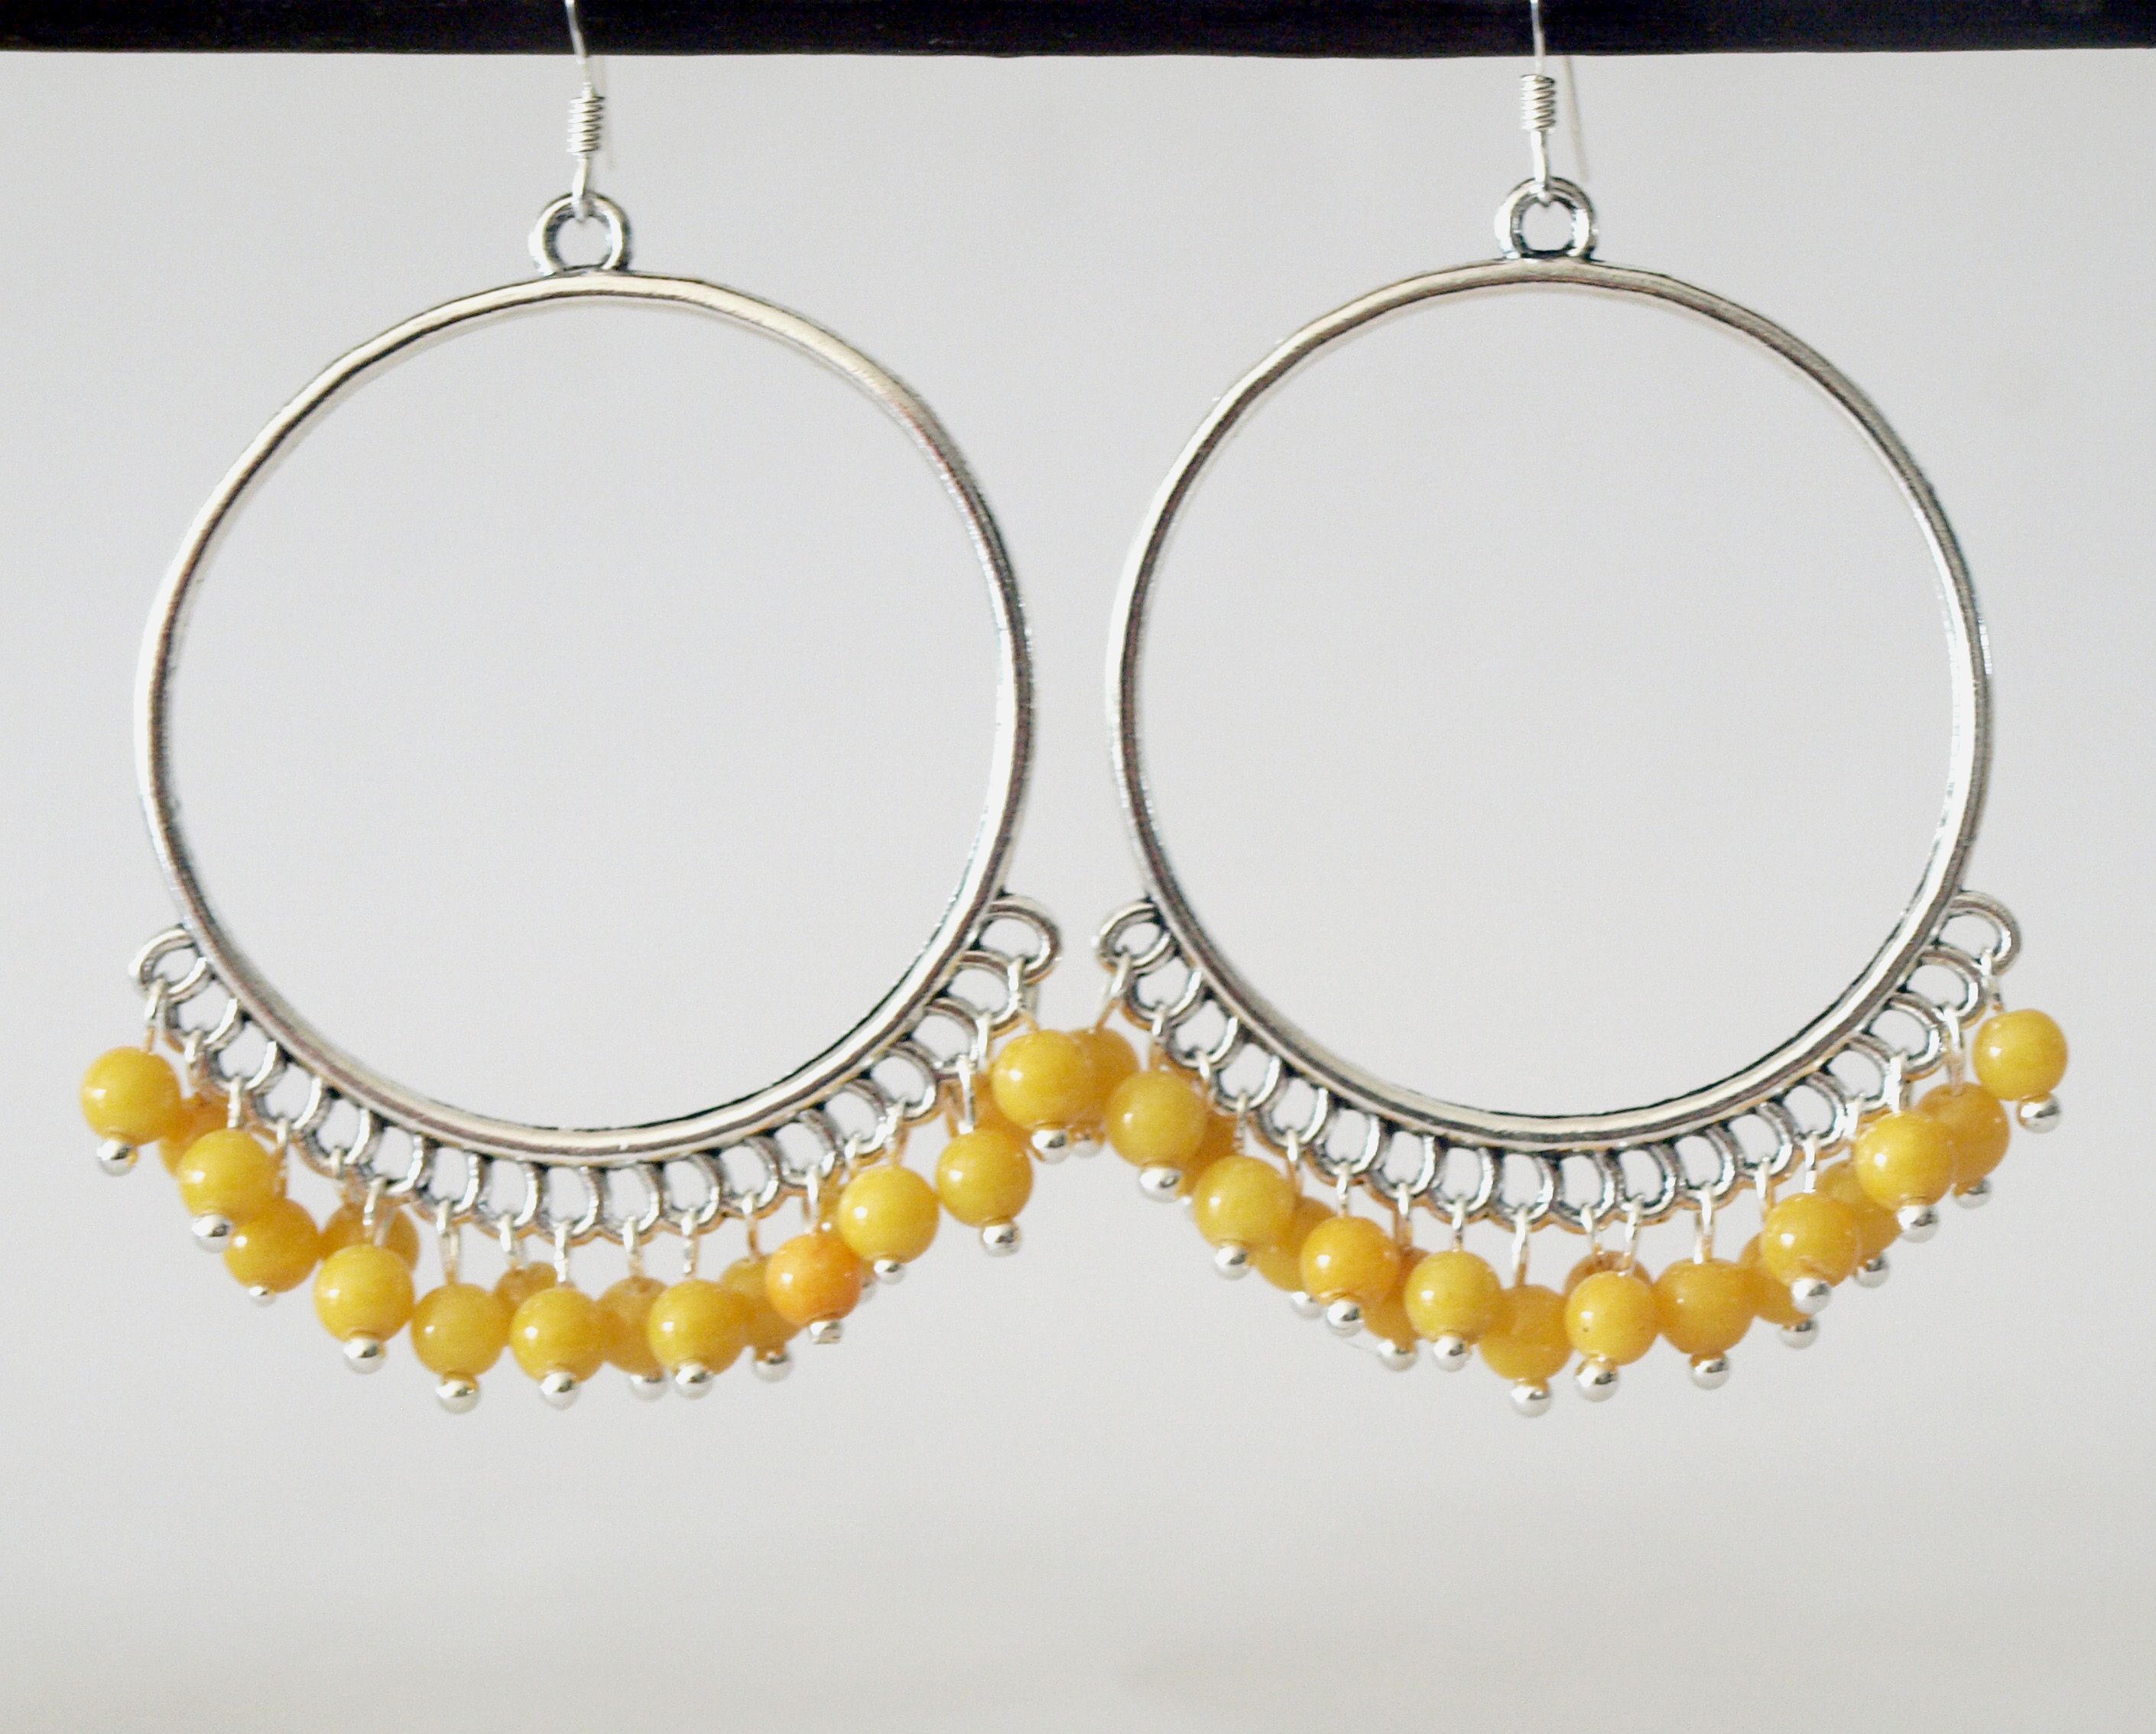 Large Hoop Yellow Earrings Chandelier